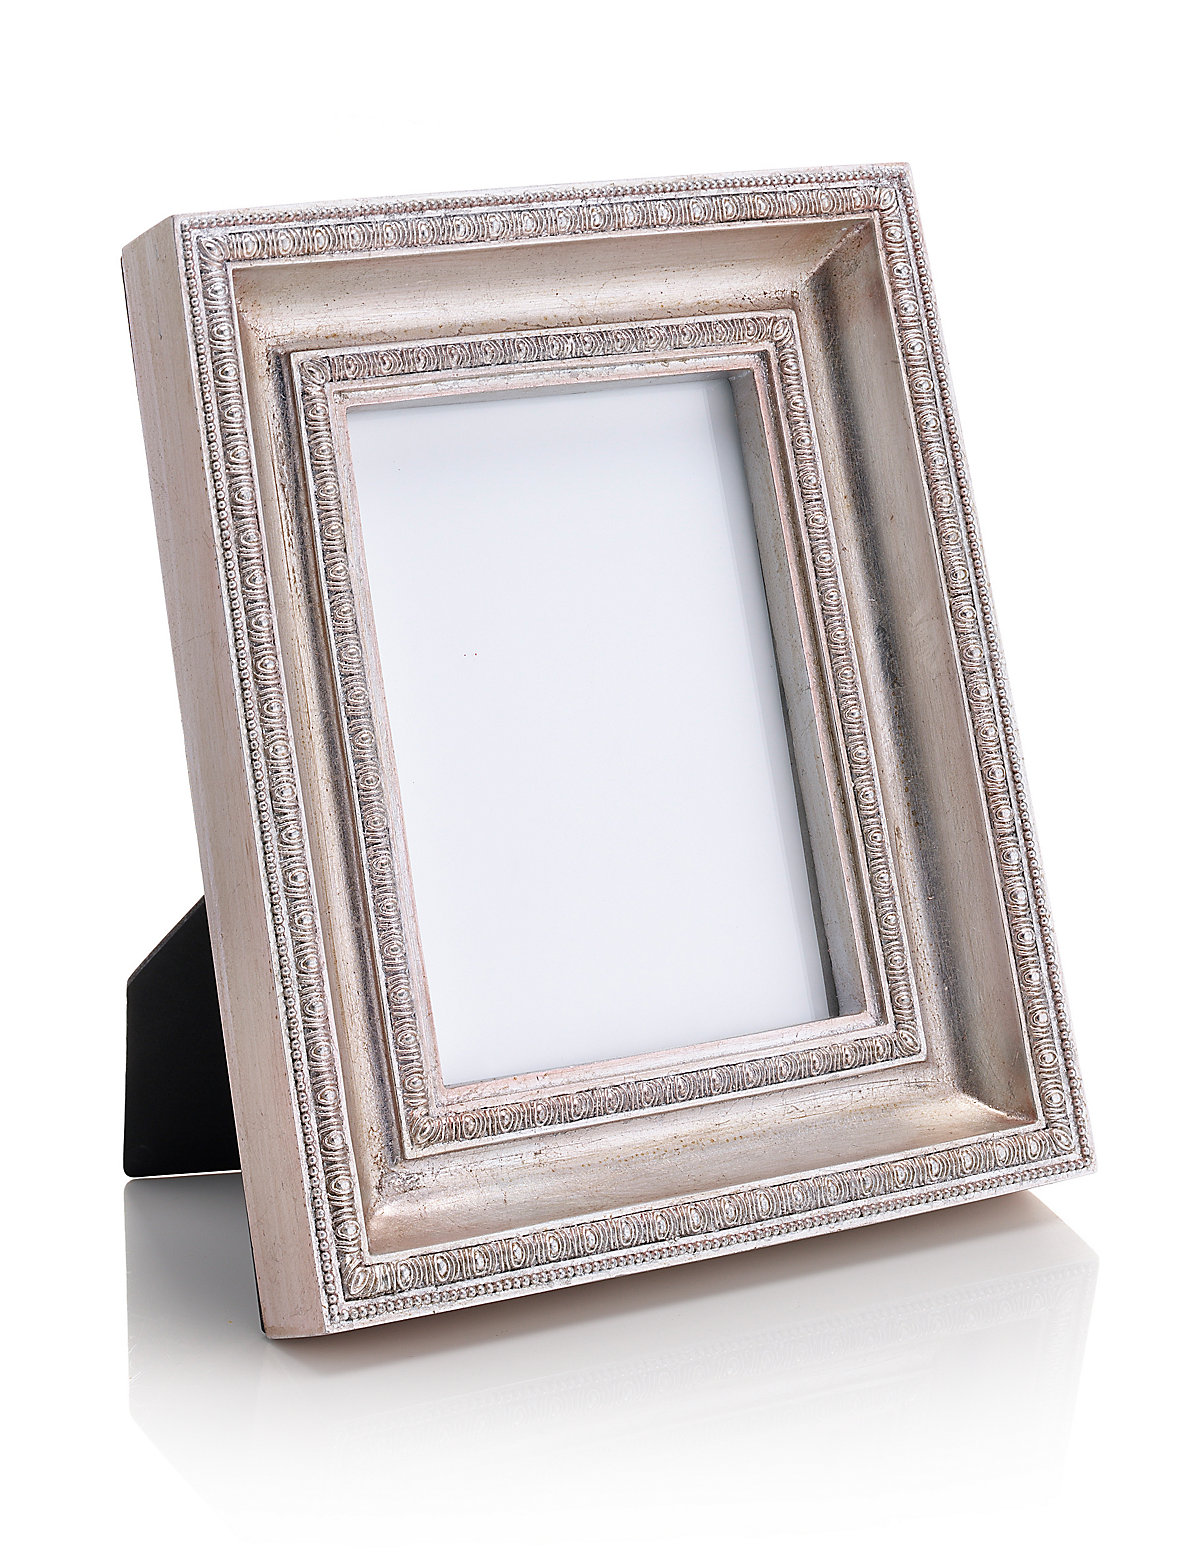 Marks and spencers photo frames Corpse Flower Pictures HowStuffWorks